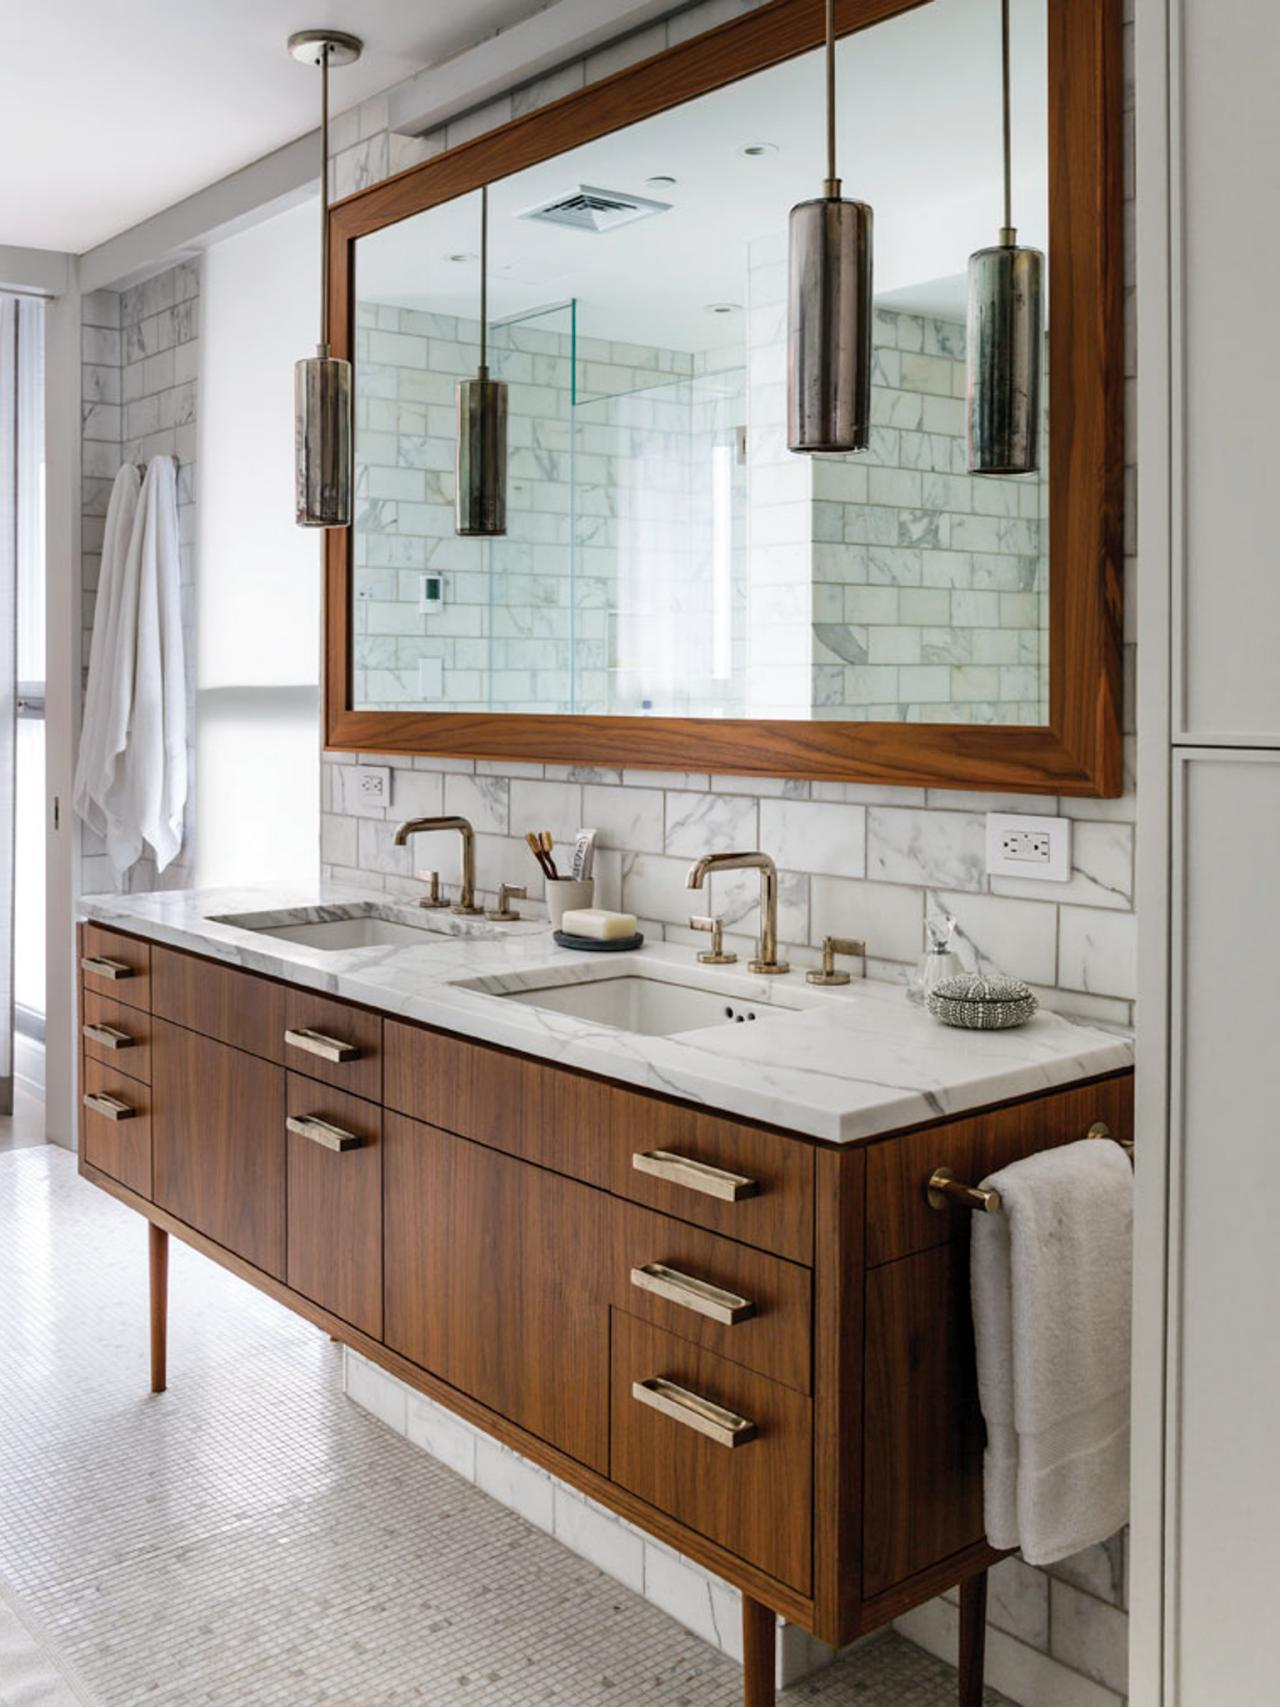 Dreamy bathroom vanities and countertops bathroom ideas for Modern chic bathroom designs